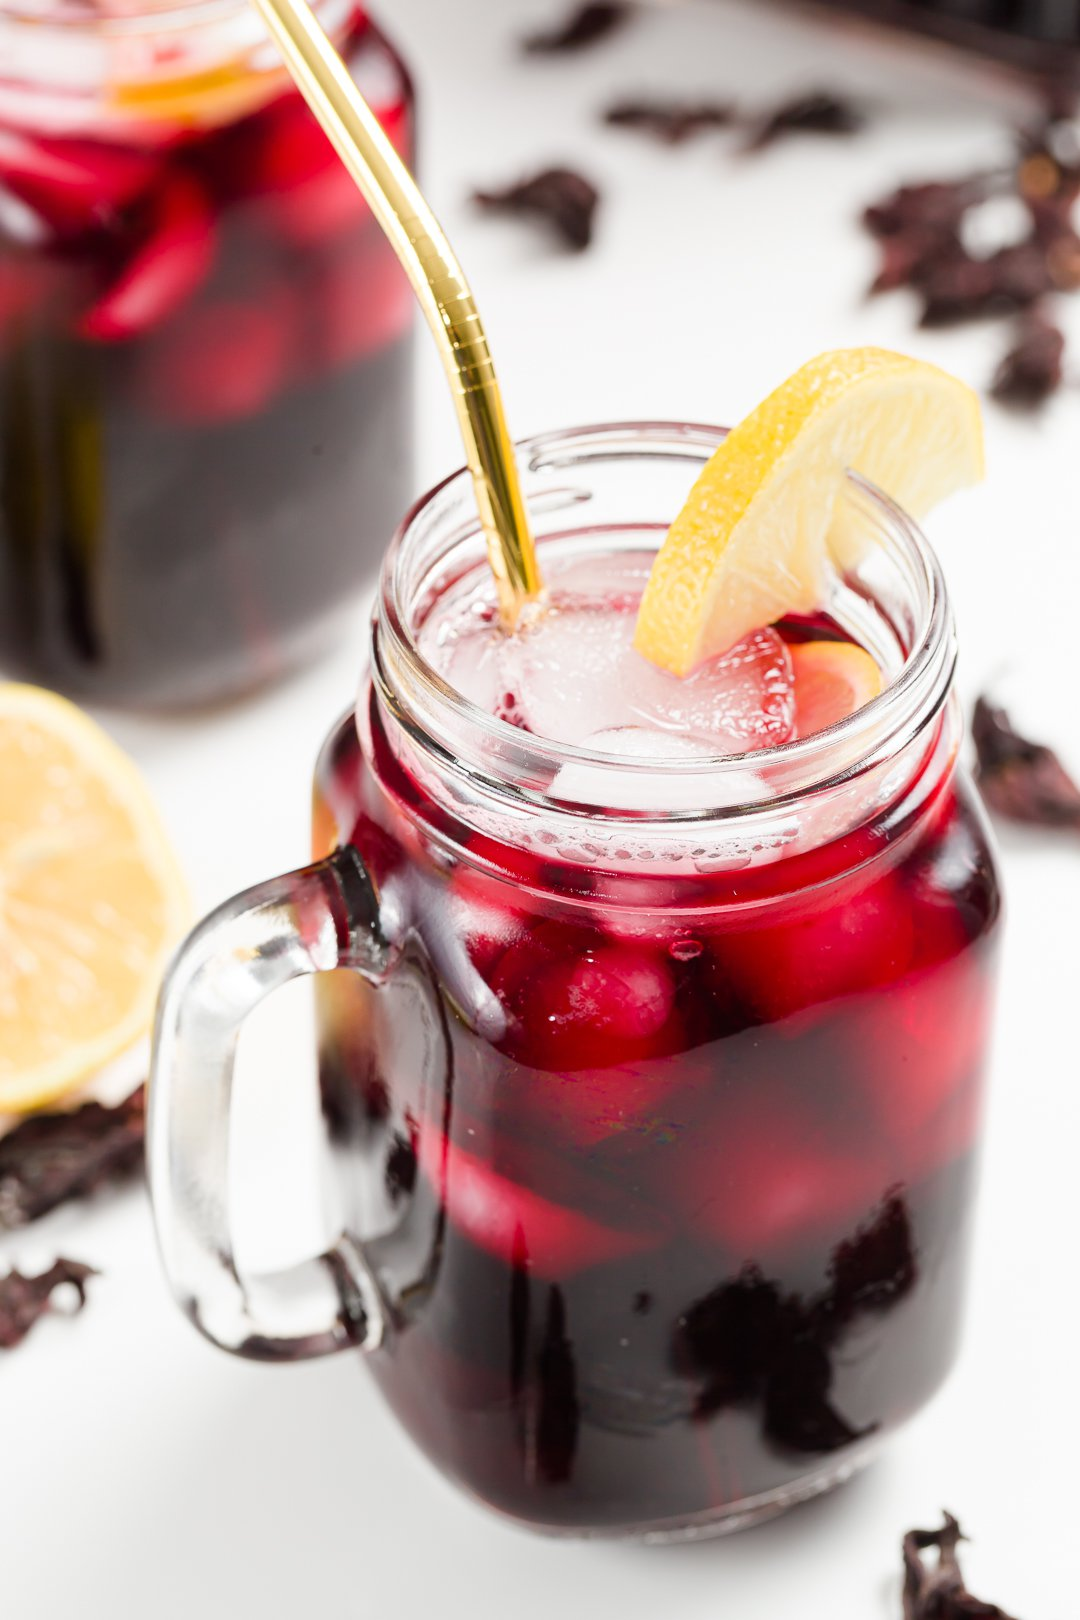 A glass of iced hibiscus tea garnished with lemon